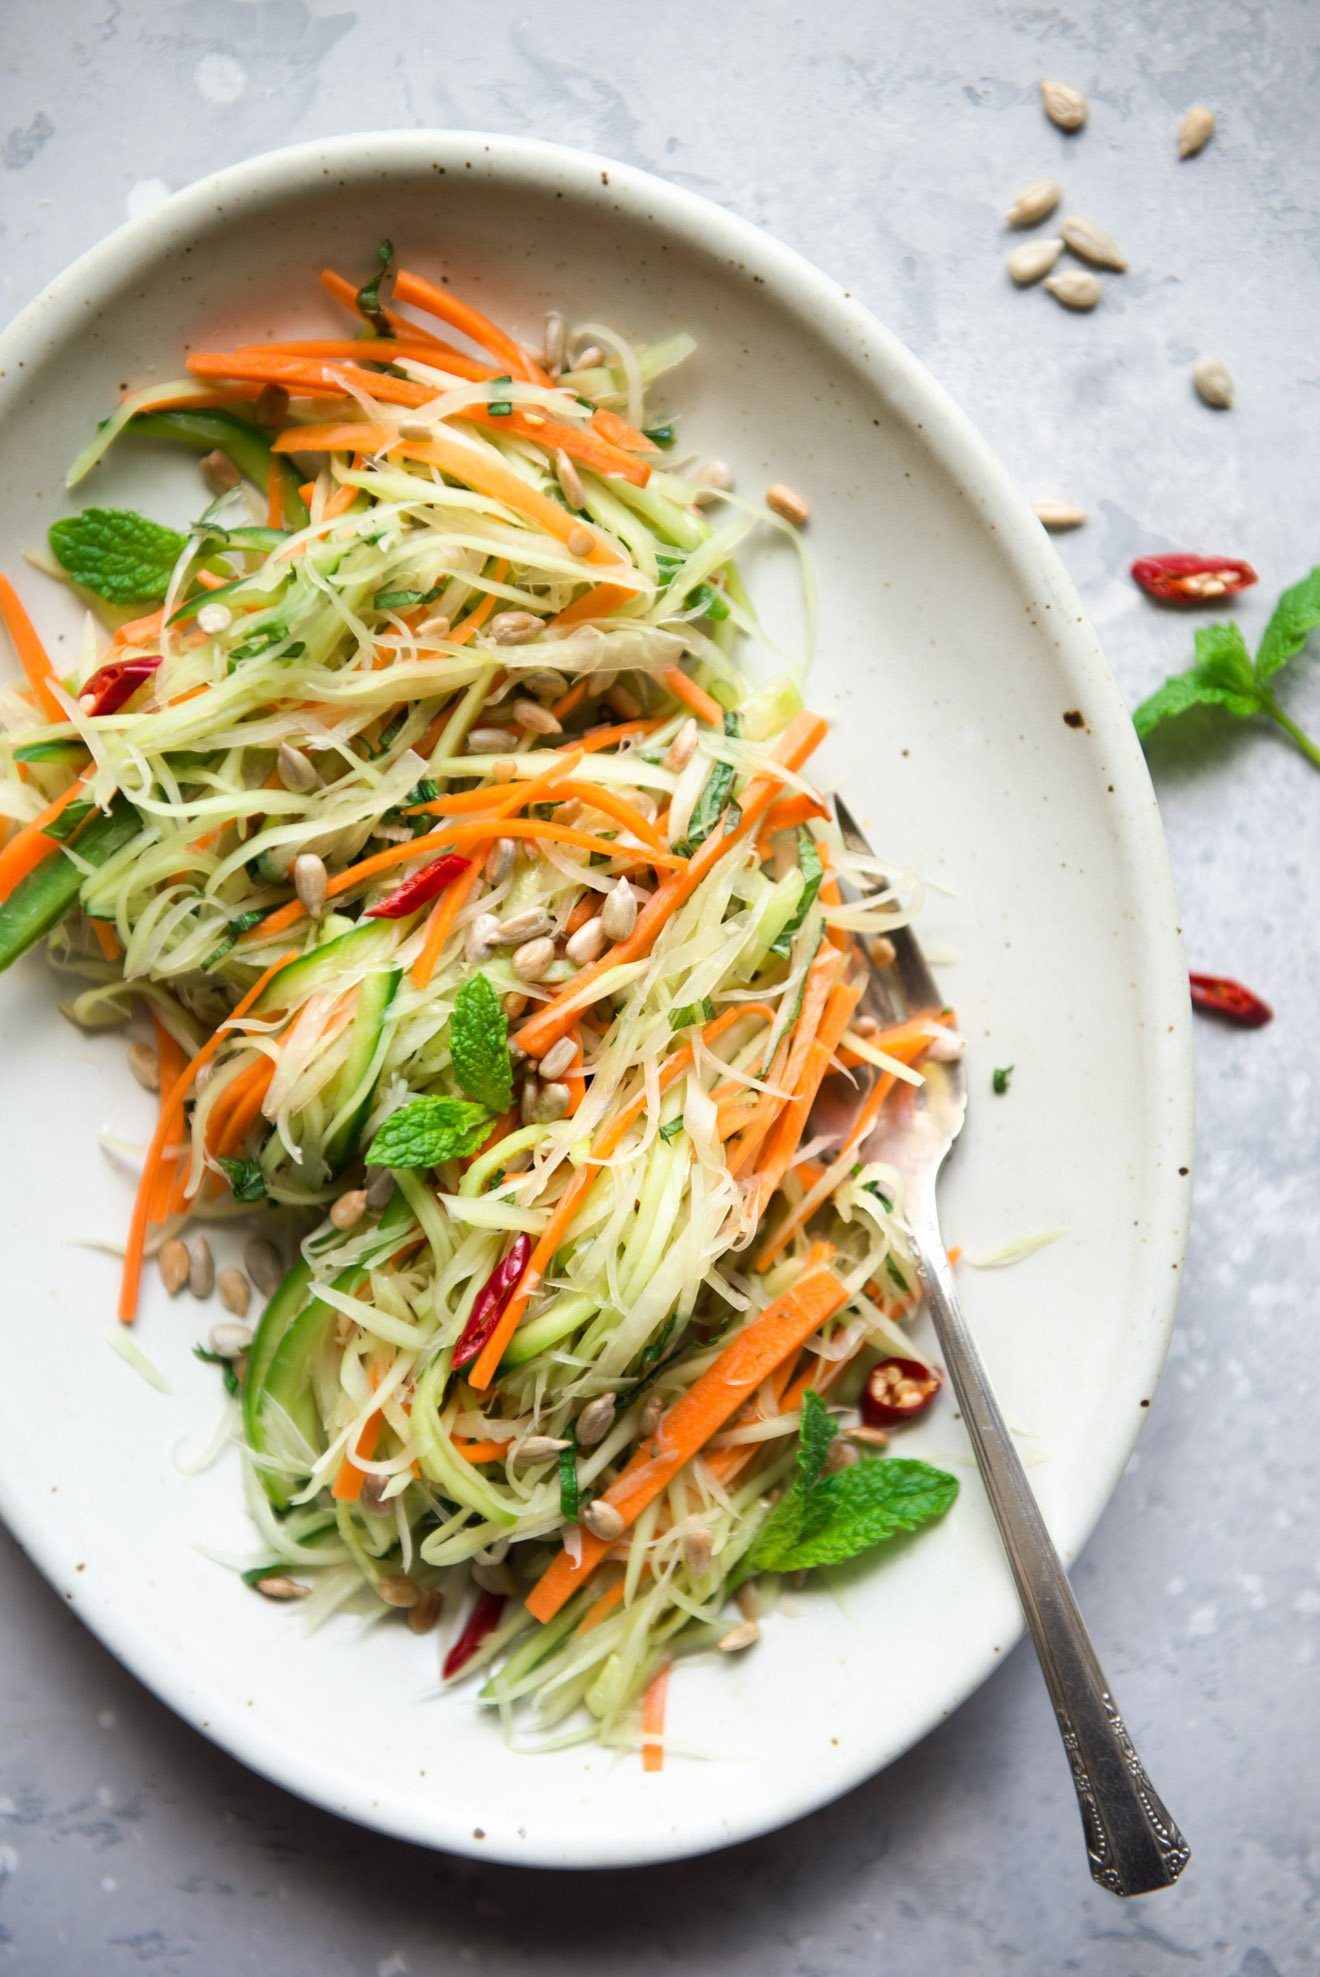 Vegan green papaya salad garnished with sunflower seeds, mint and chili